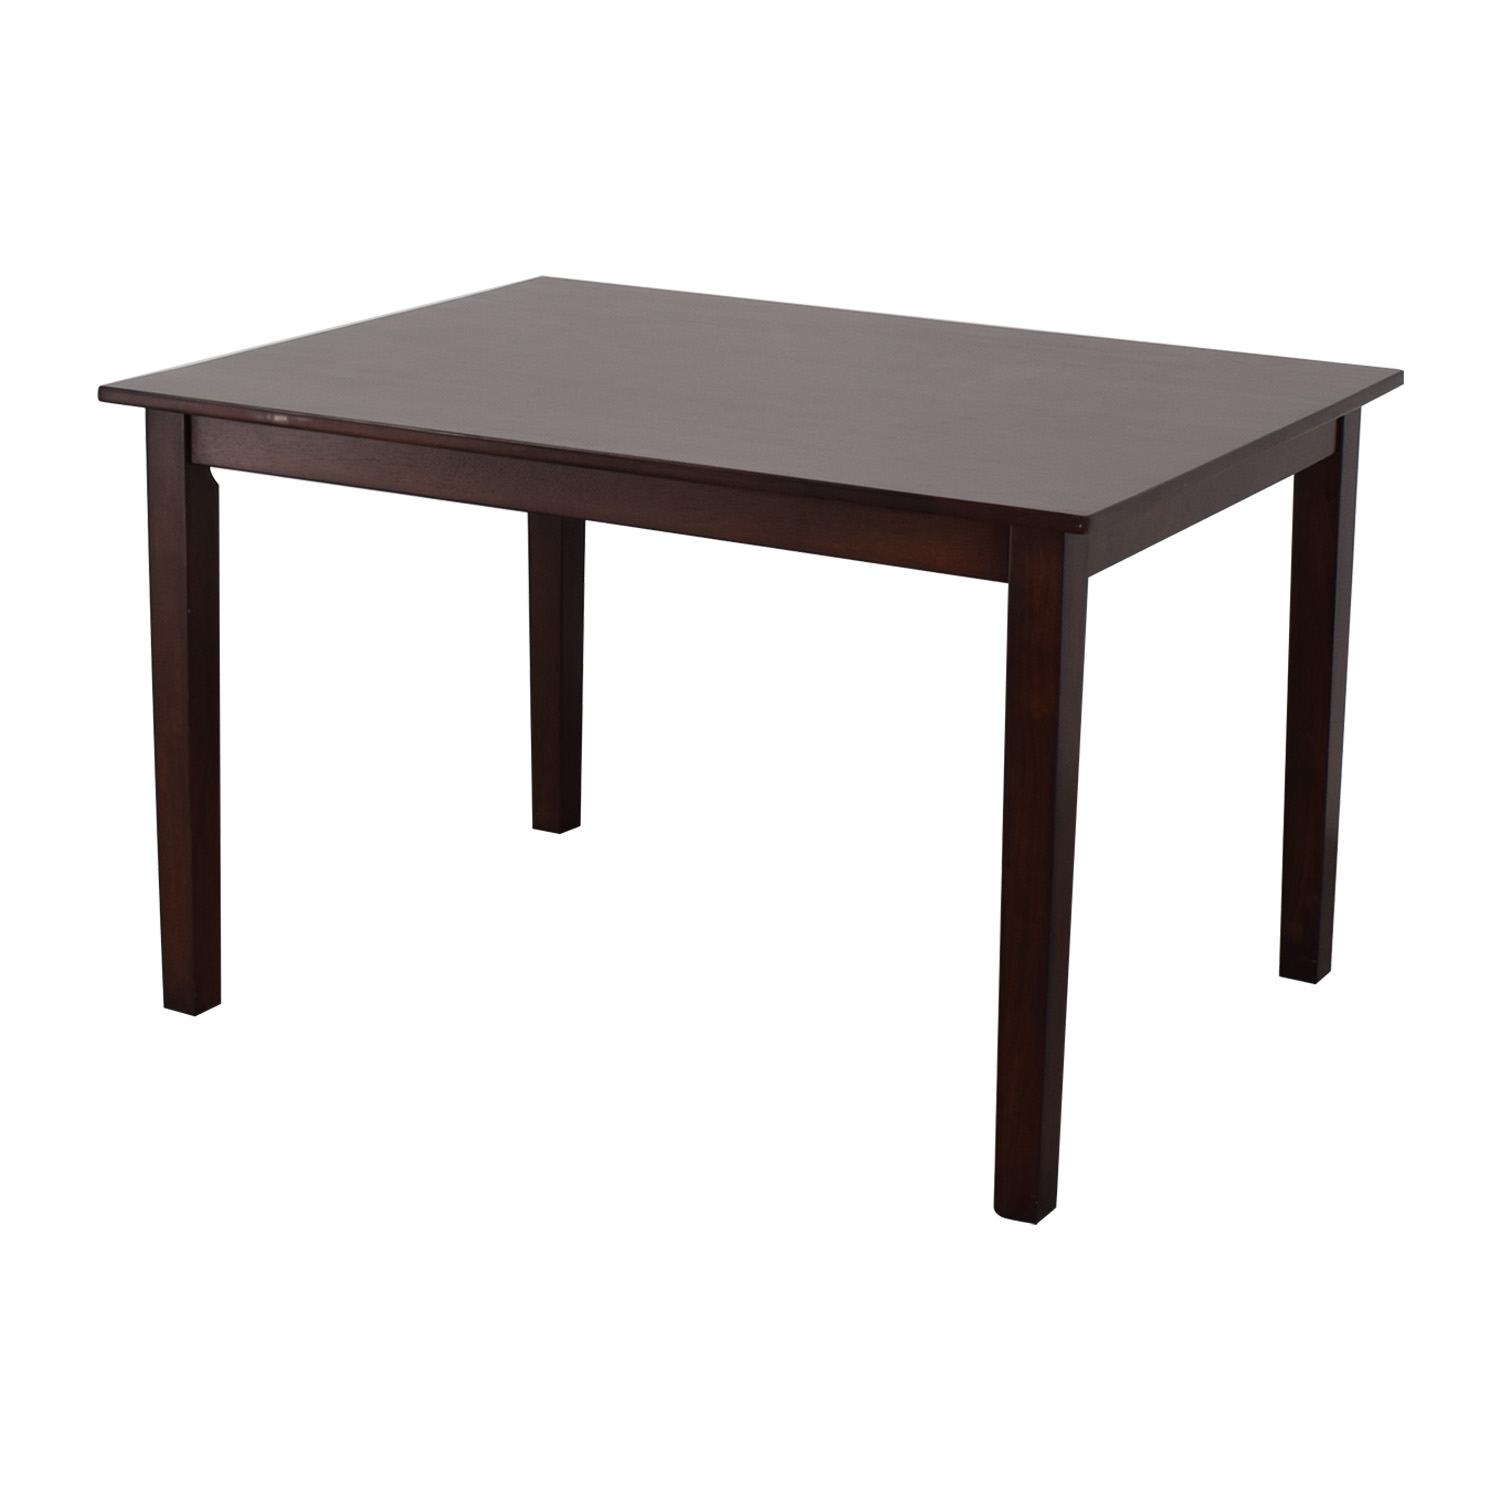 87 off star furniture star furniture dining table tables for Star furniture